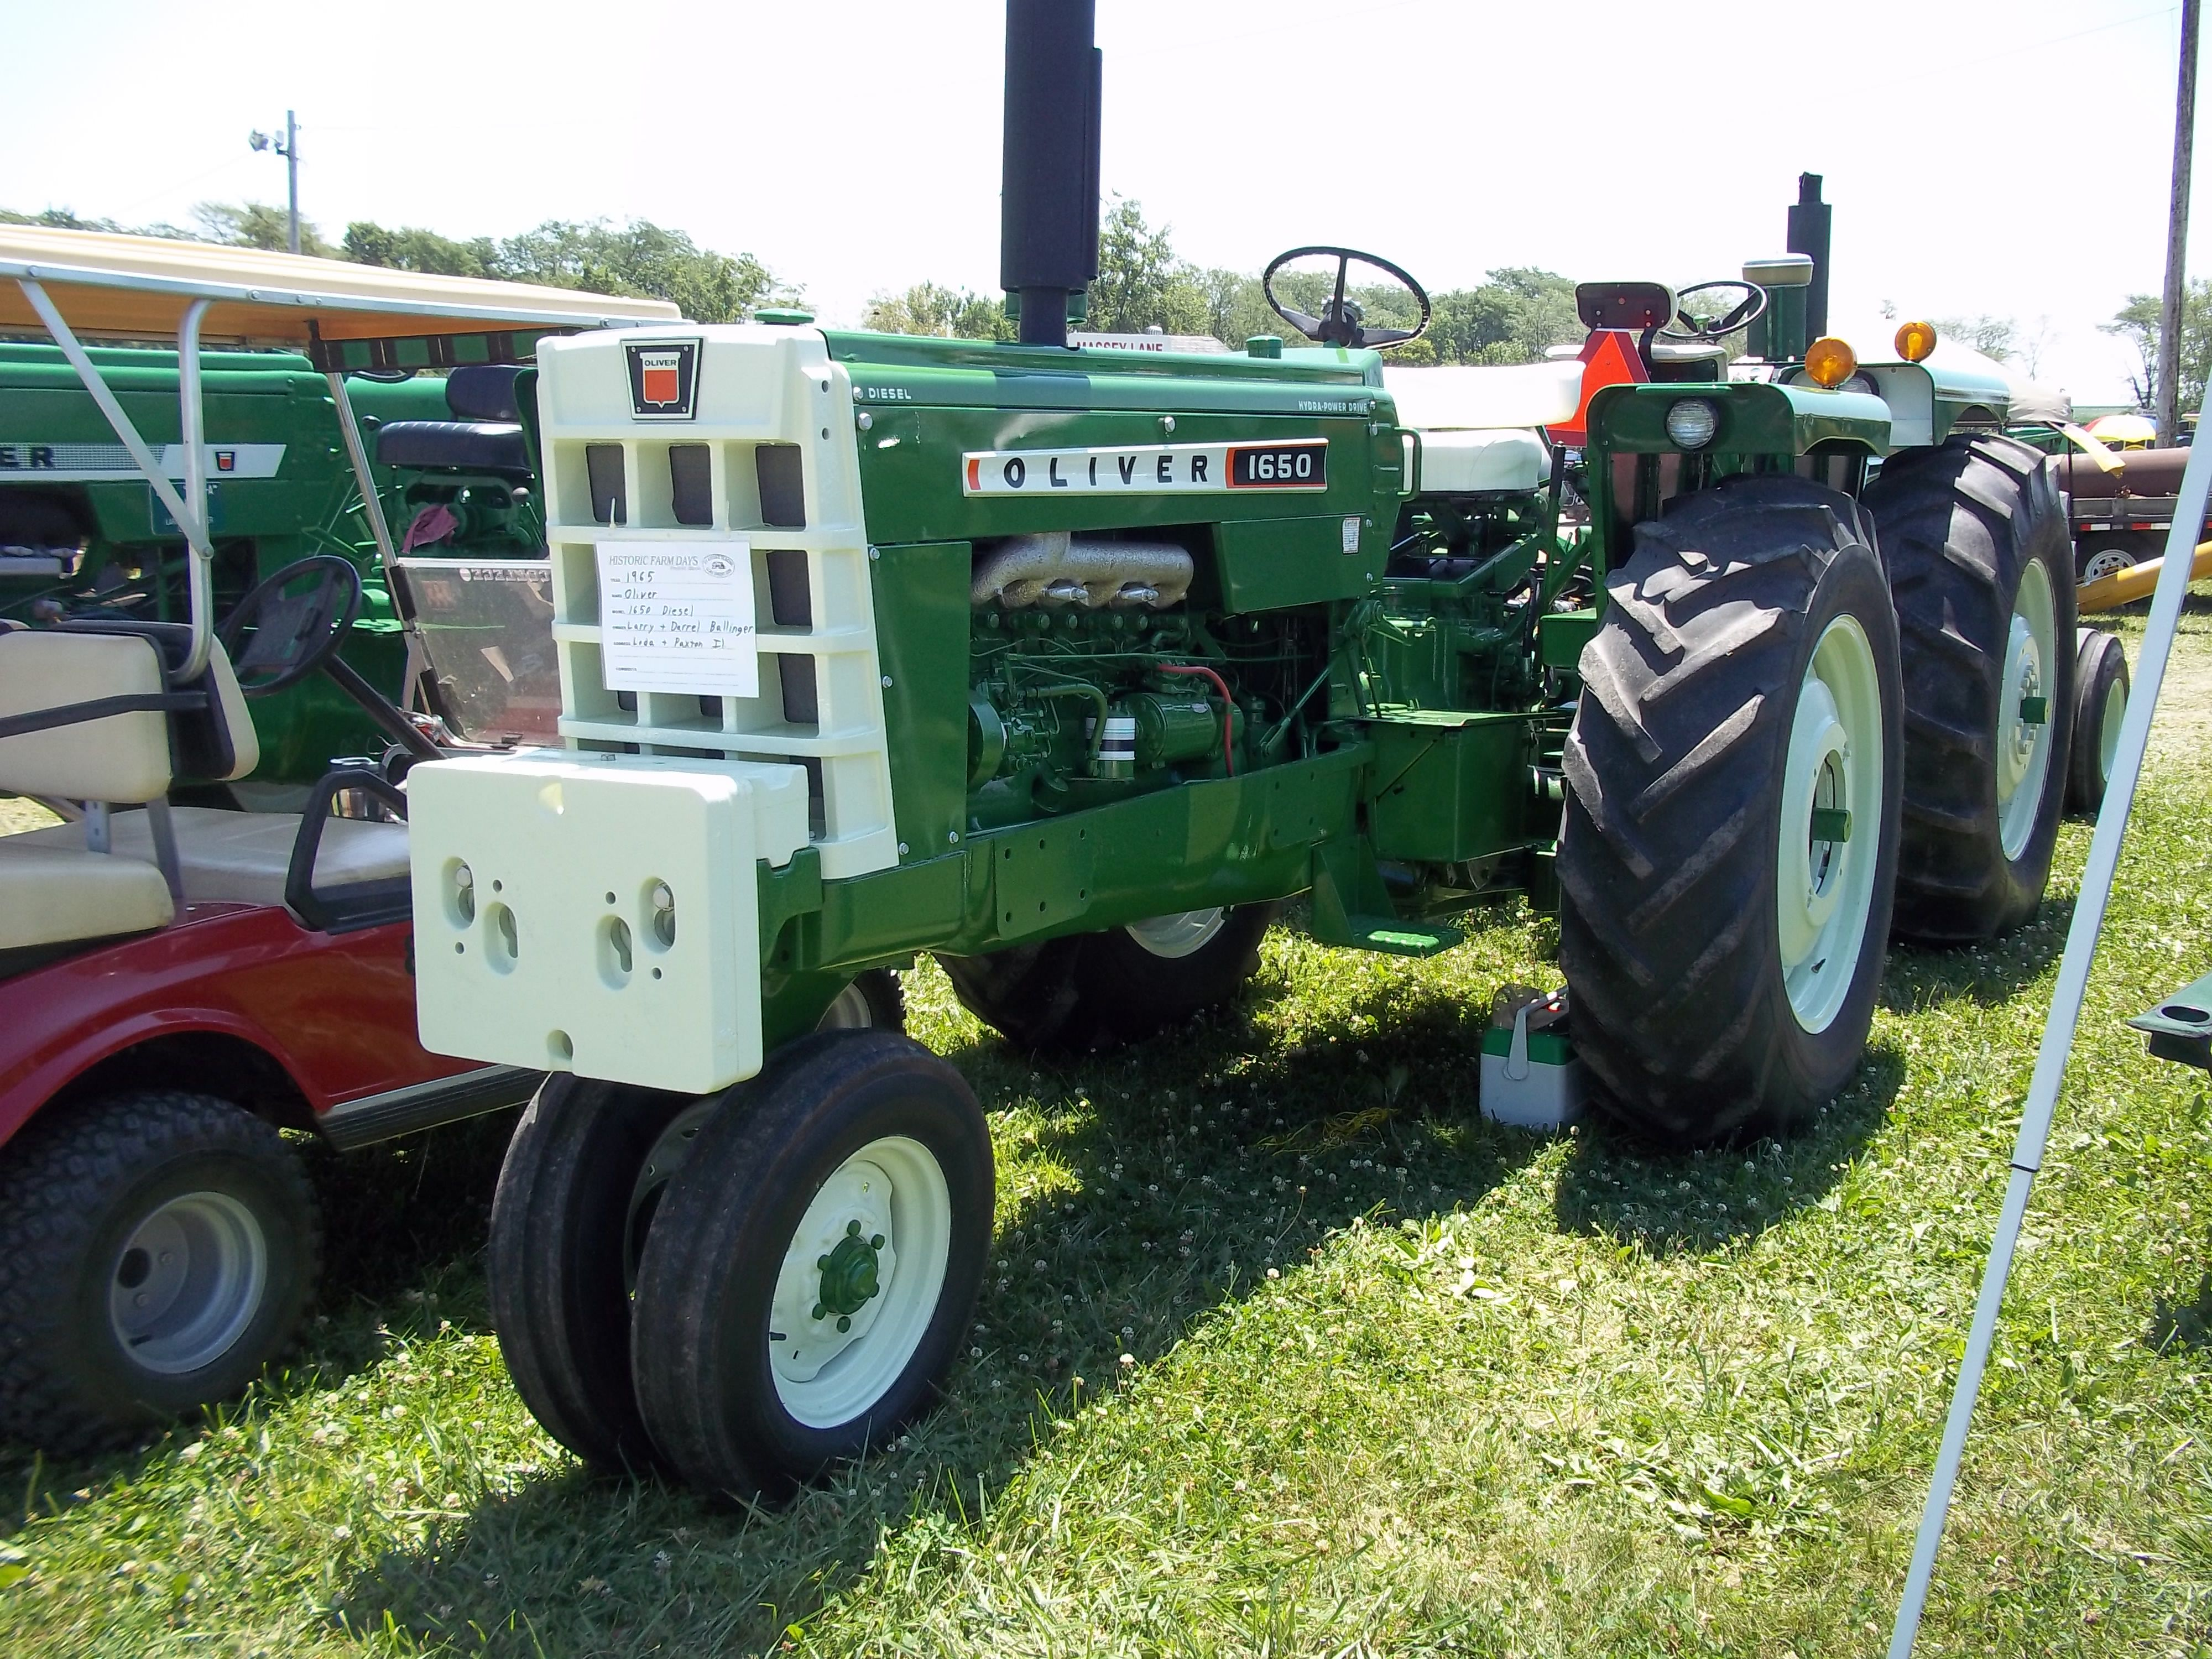 301382824759 further Ford 4630 Tractor Wiring Diagram also 700 Oliver 1600 Photos as well 331141018981 moreover Oliver Tractor Schematics. on oliver 1650 tractor